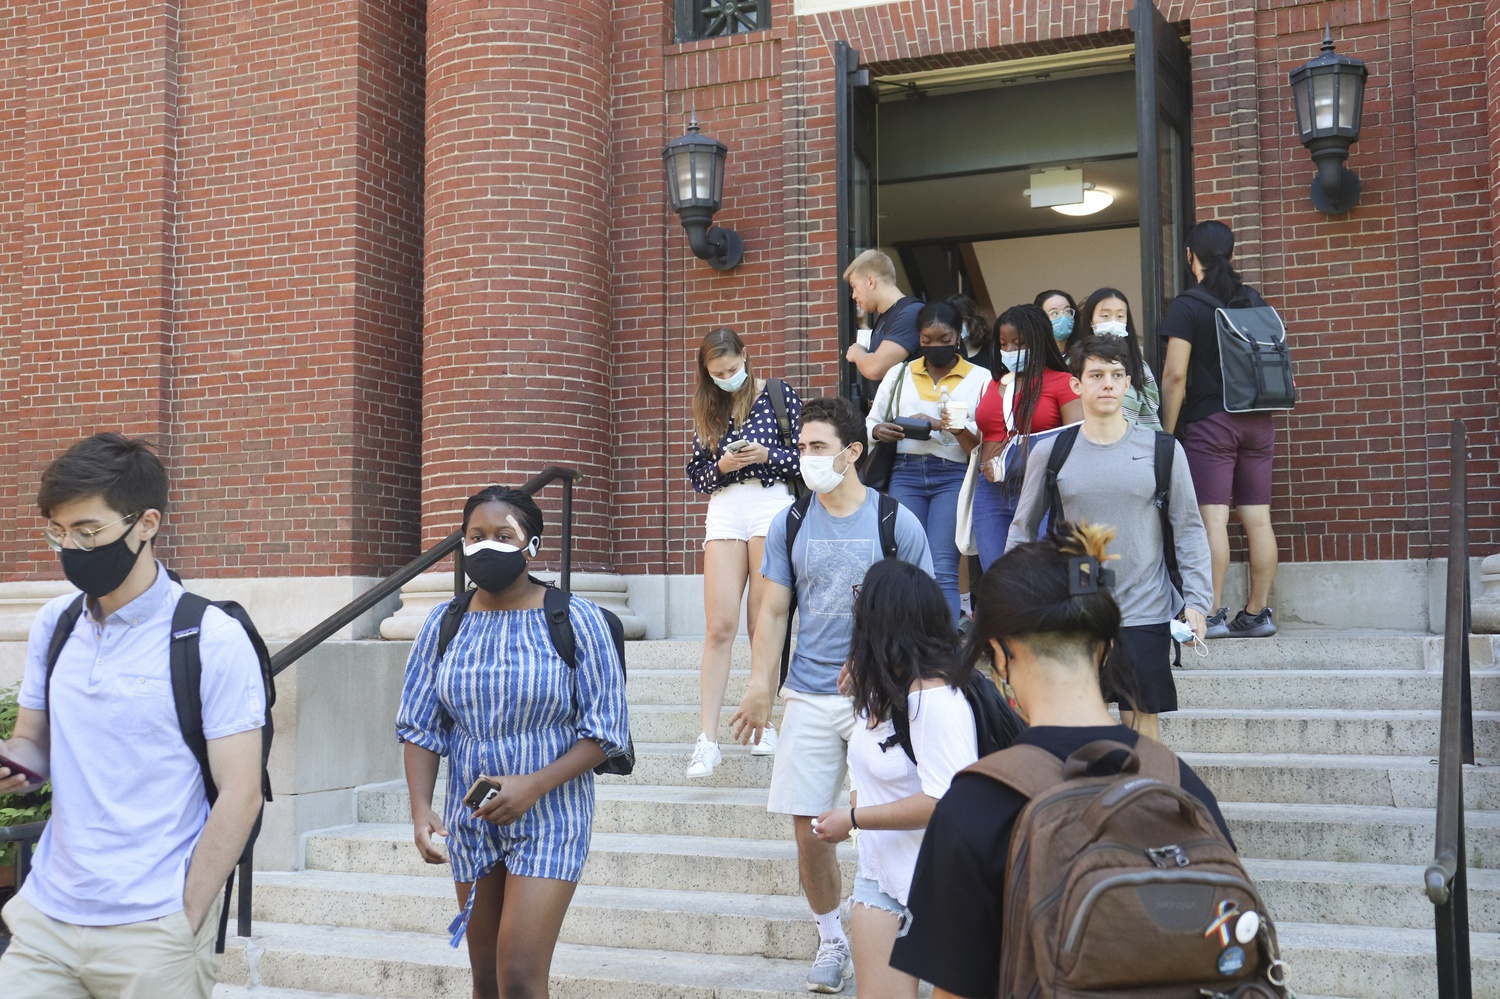 Students exit Emerson Hall after class on Wednesday afternoon.